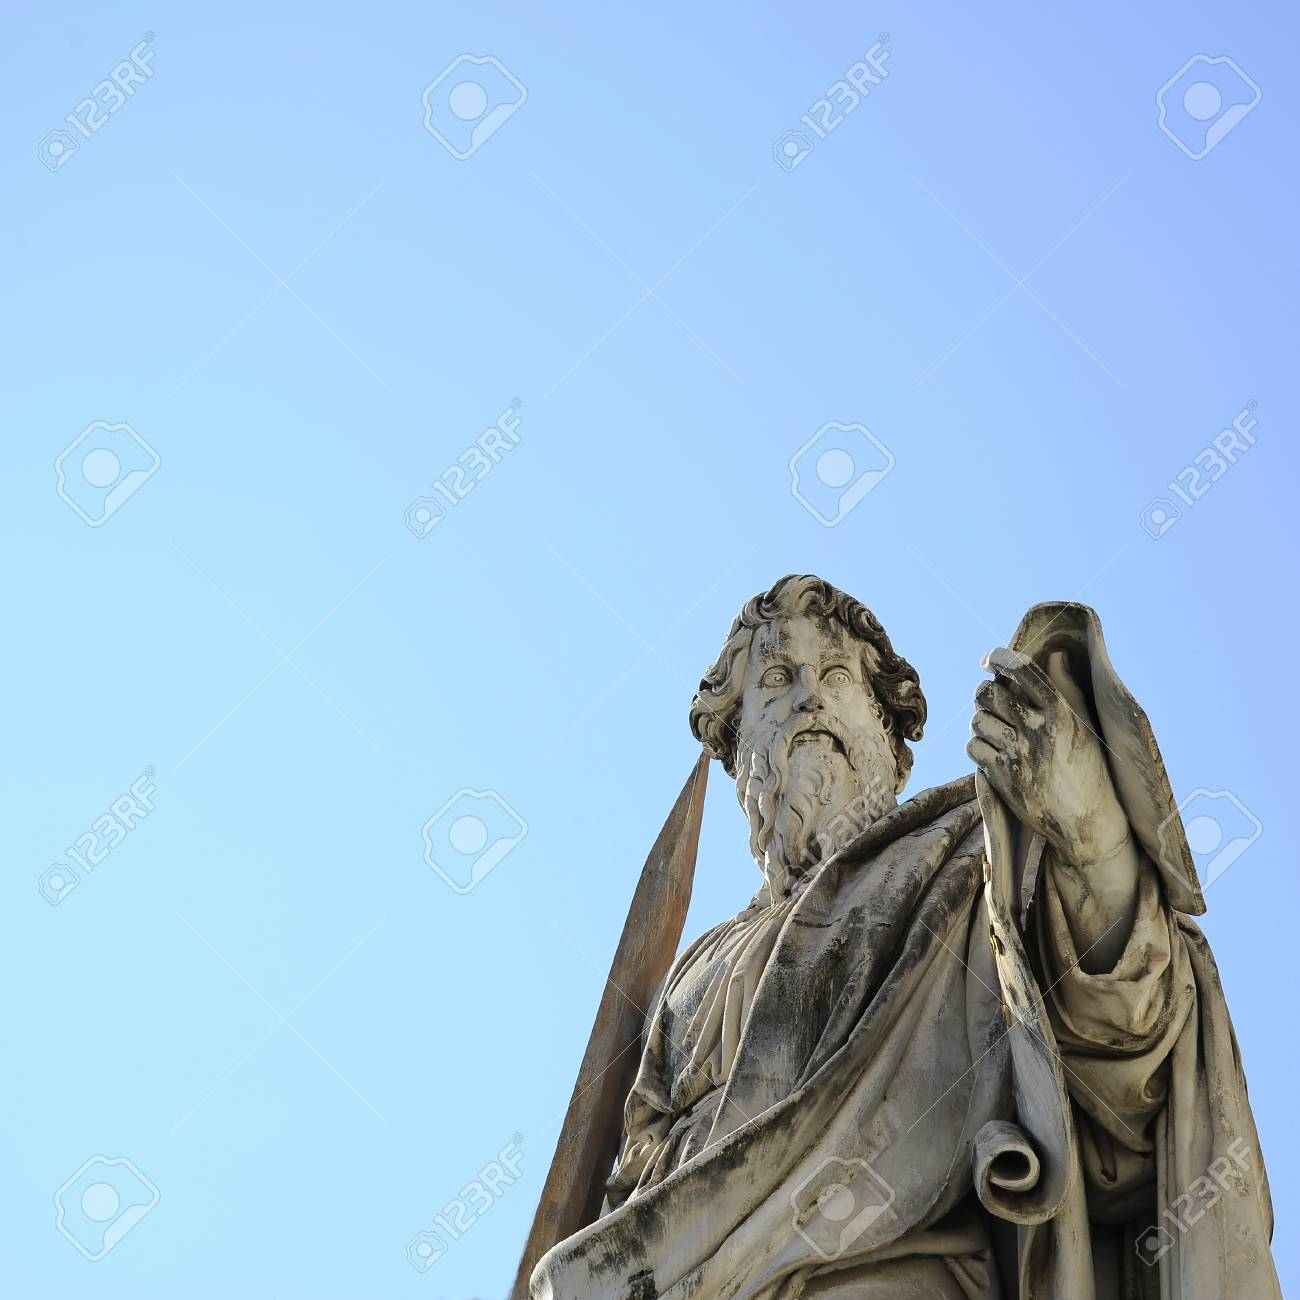 The statue of St. Paul backed by blue sky, Vatican City (Rome, Italy). - 113517285